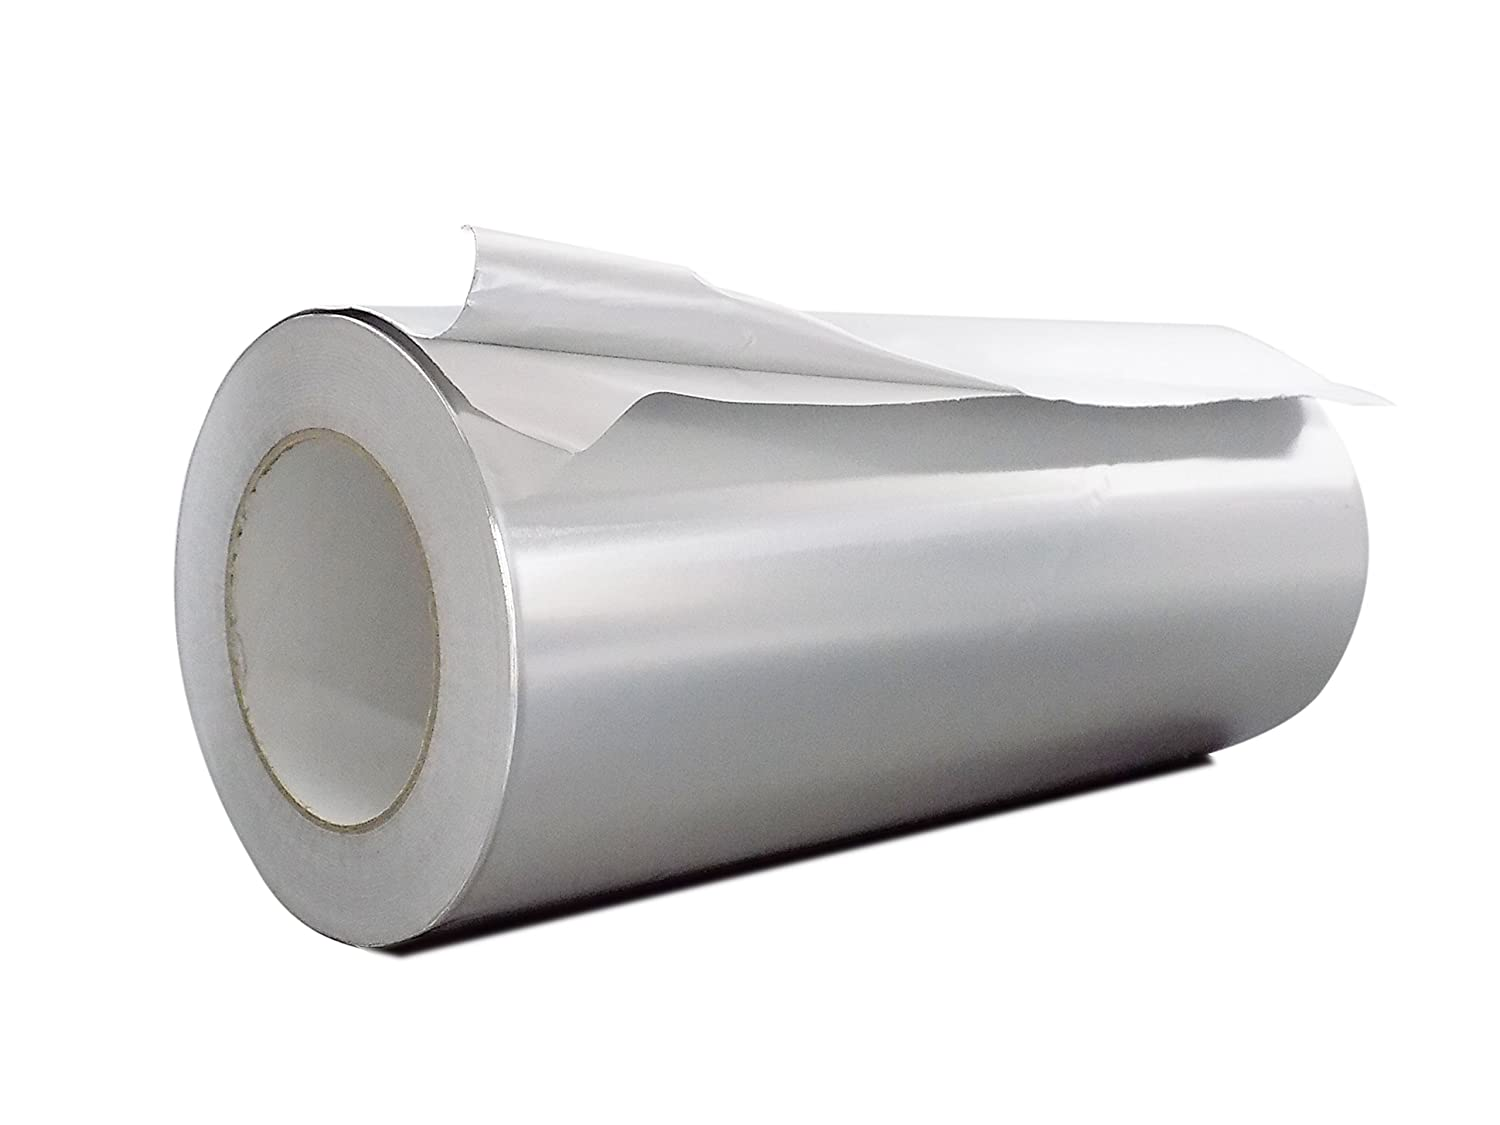 WOD AF-20R Premium Grade General Purpose Heat Shield Resistant Aluminum Foil Tape - Good for HVAC, Air Ducts, Insulation (Available in Multiple Sizes): 12 in. wide x 50 yds.